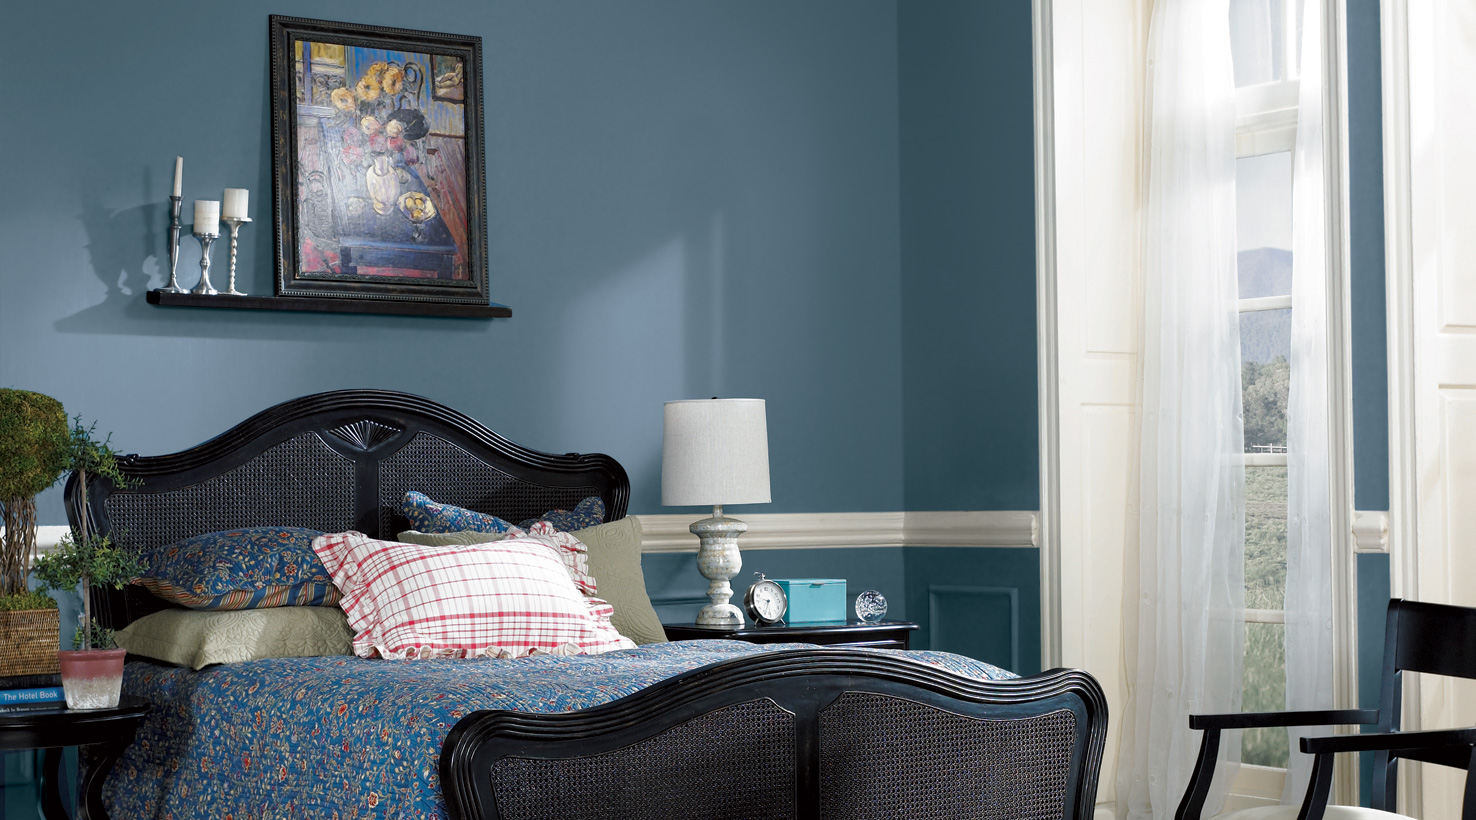 Design Bedroom Colors bedroom color inspiration gallery sherwin williams 1